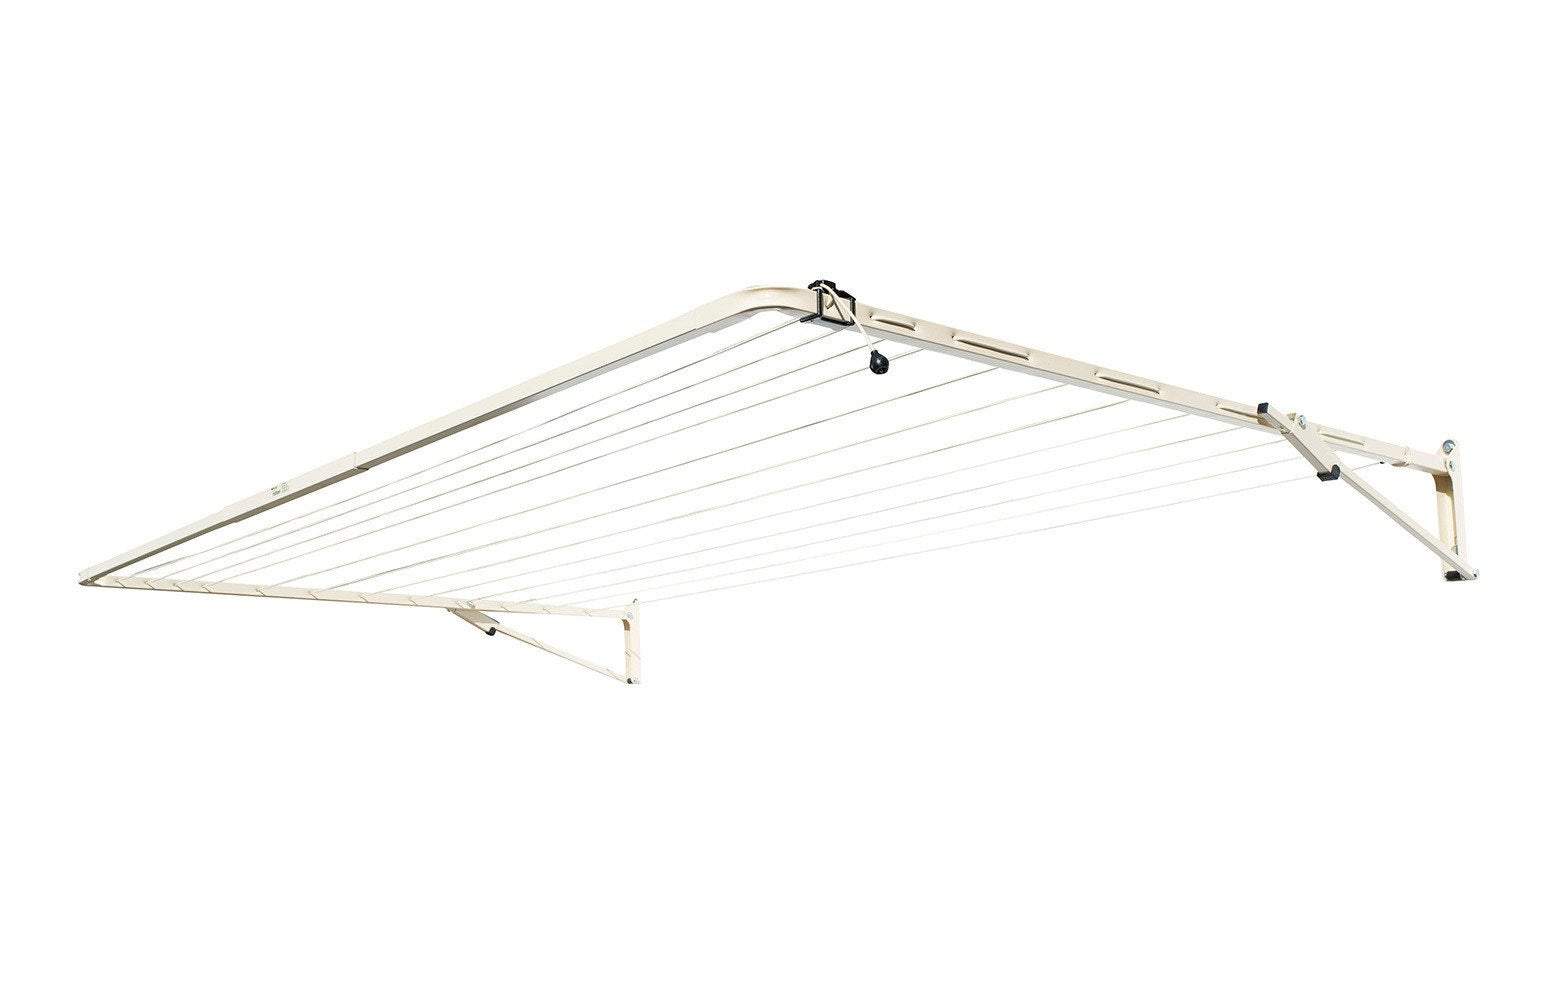 Austral Standard 28 Clothesline - Classic Cream Right Side Perspective - Clotheslines Installation Australia